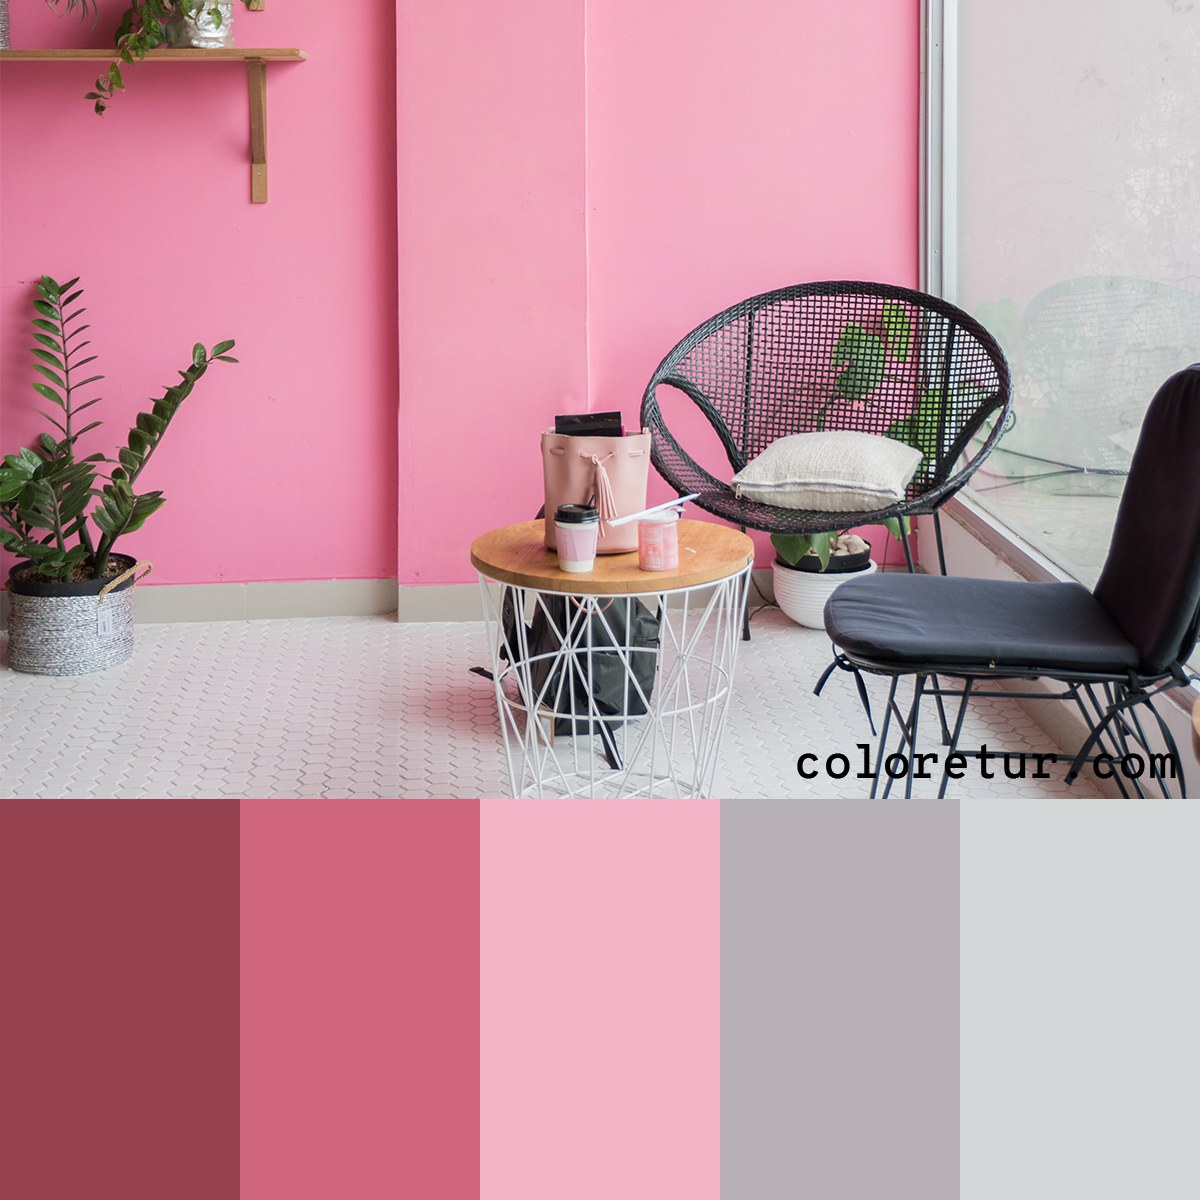 An air, bright sunroom painted in light pink creates a stunning backdrop that this color palette pulls from.